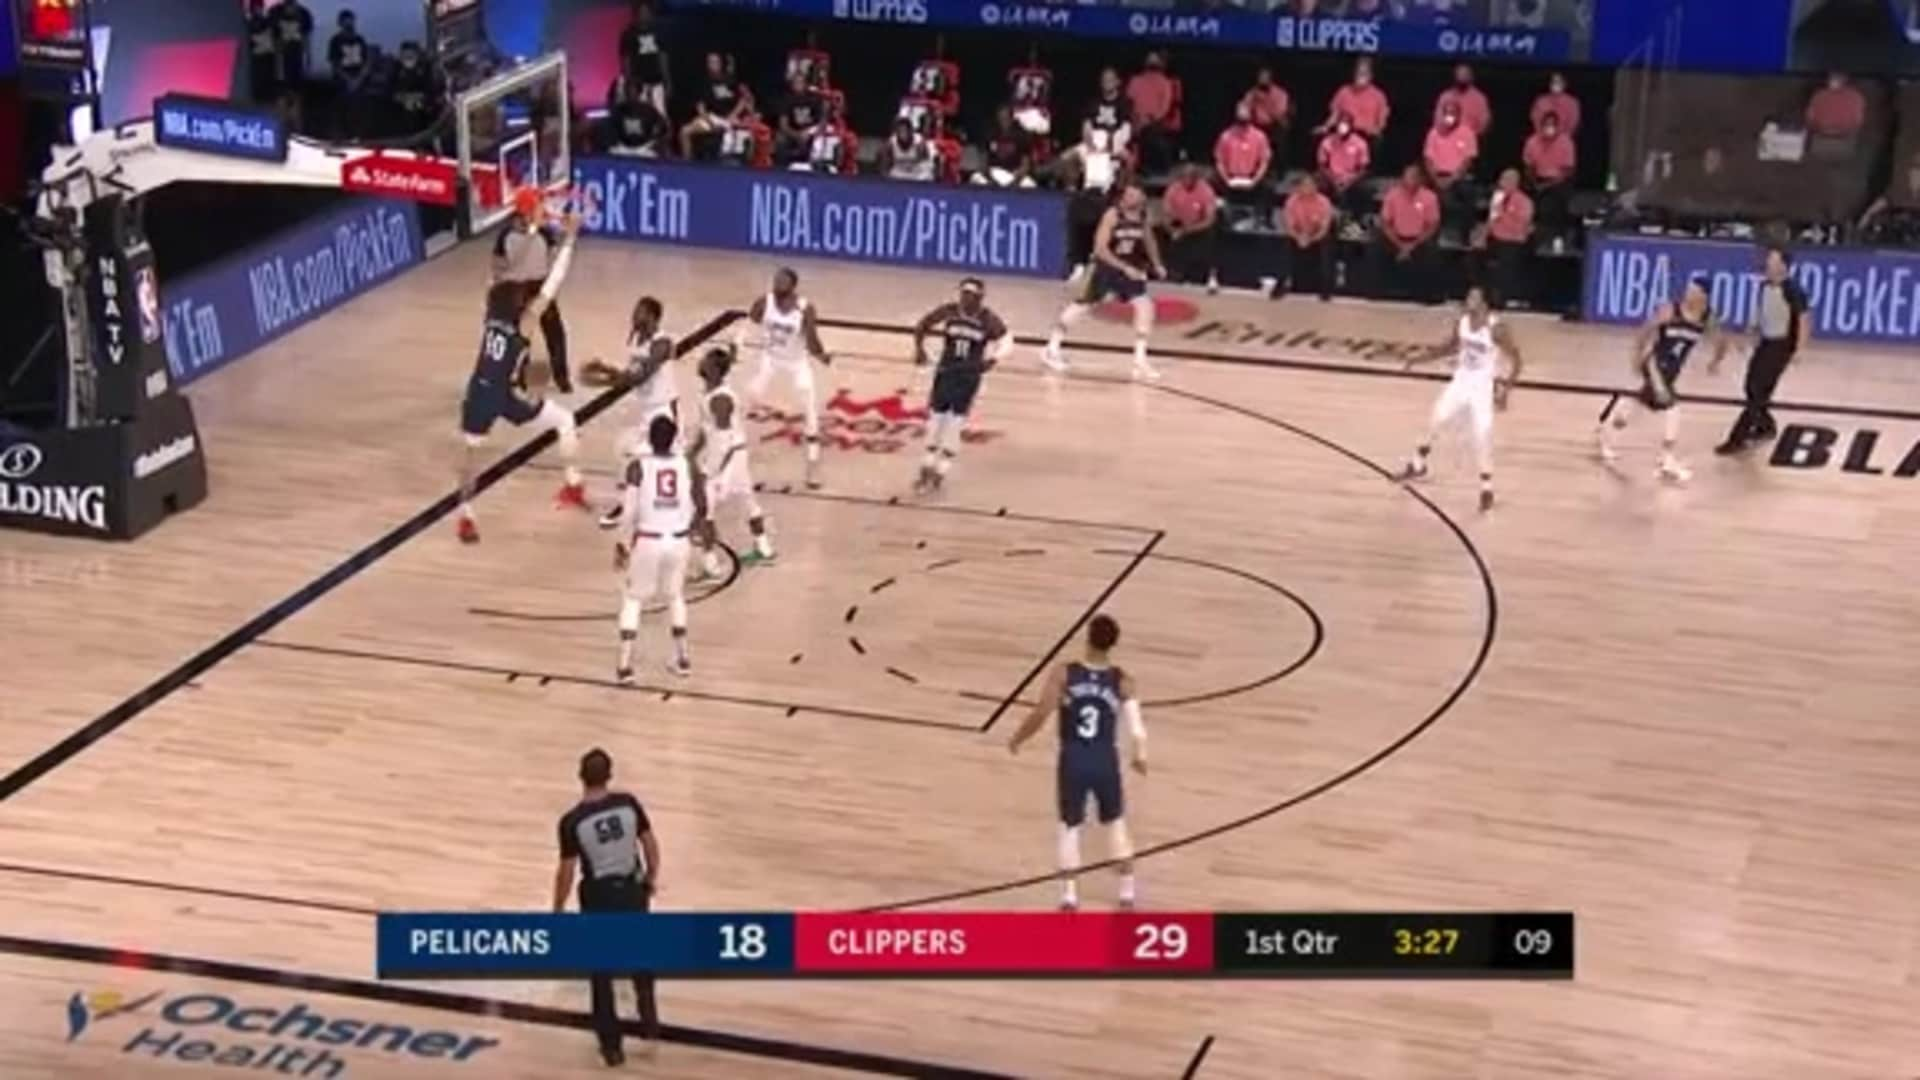 Pelicans-Clippers Highlights: Jaxson Hayes alley-oop dunk